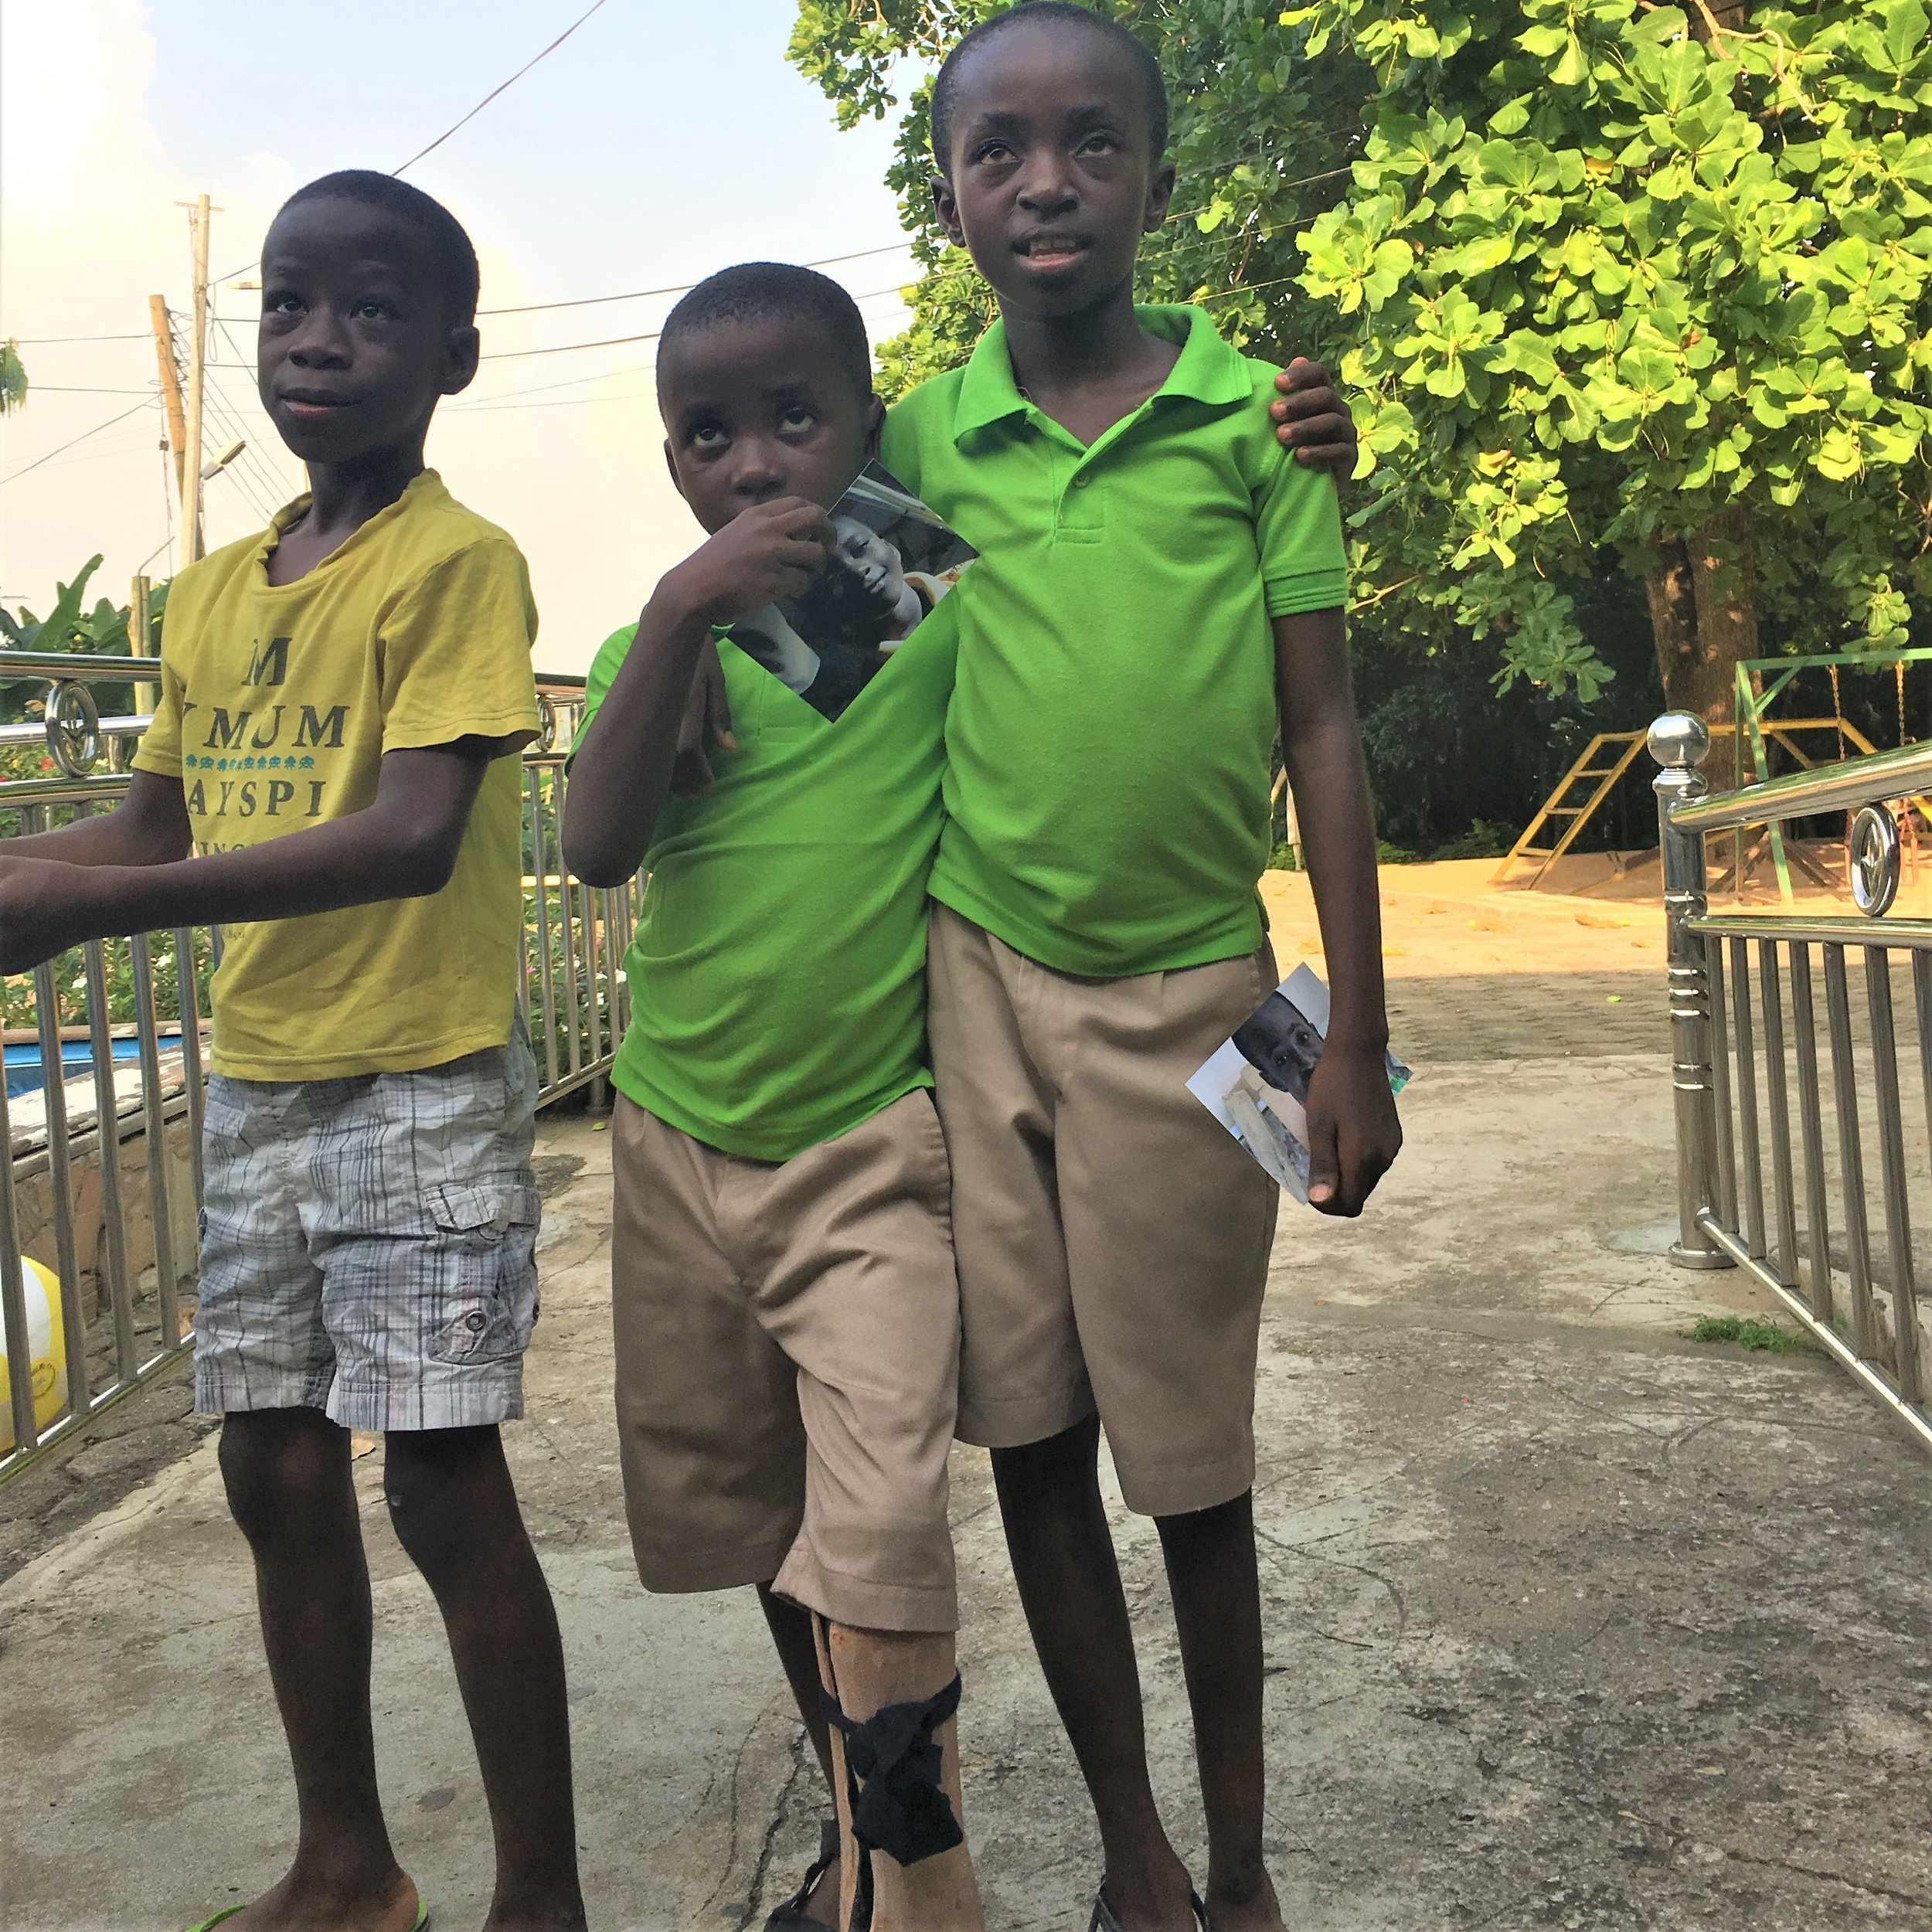 Silver Level Donation      Grant 50 Children with Orthopedic Care - $10,000    Provide fifty children with orthopedic care, room and board and education at a rehabilitation hospital.